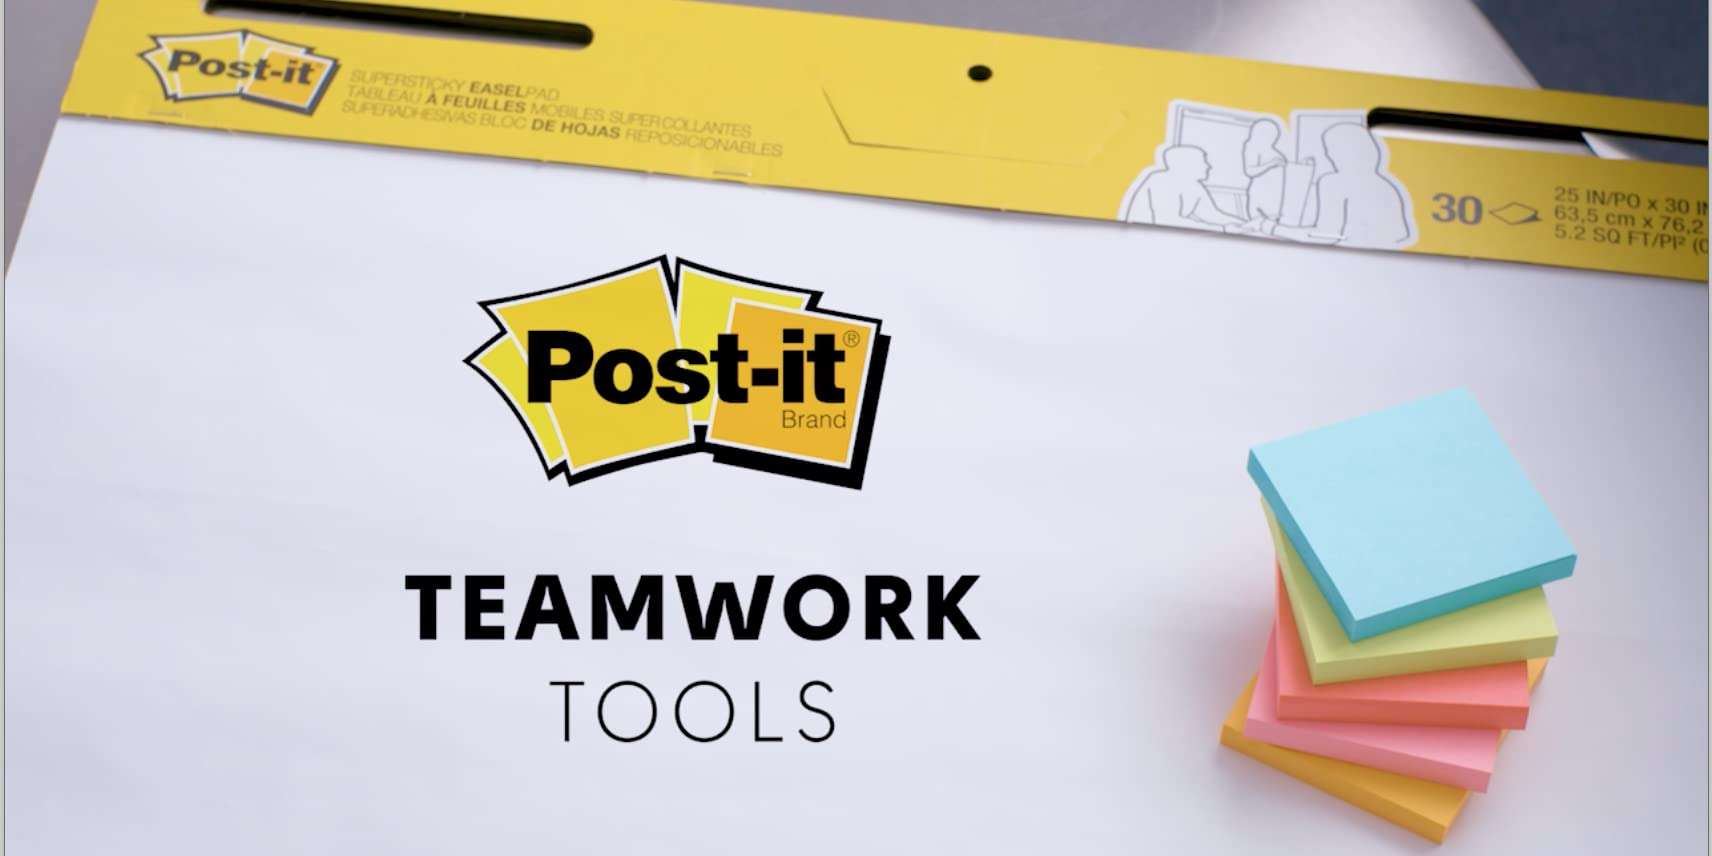 Get Your Post-it Supplies